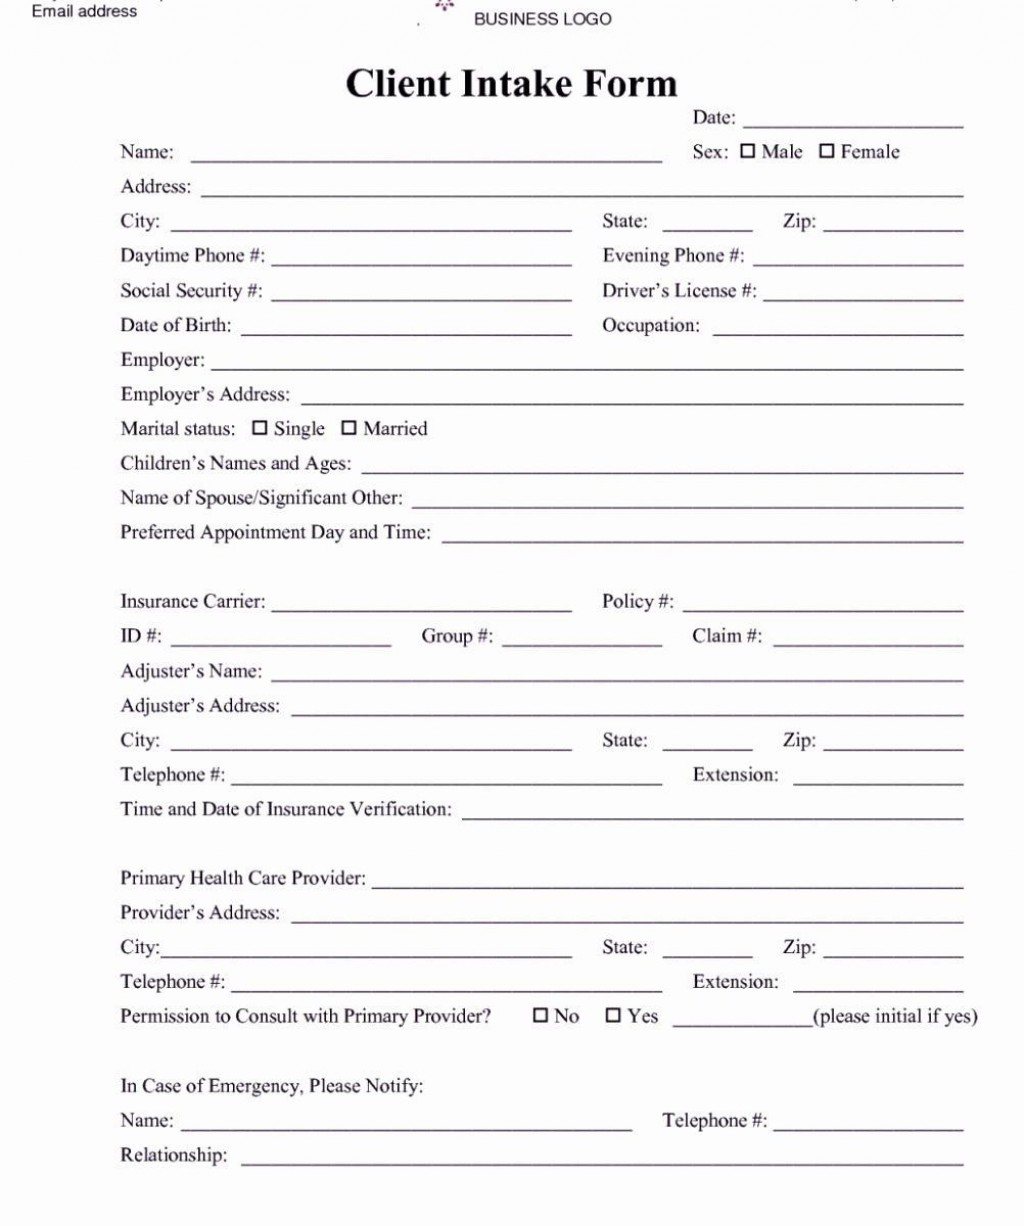 002 Impressive Free Patient Intake Form Template Image  Massage Client NewLarge